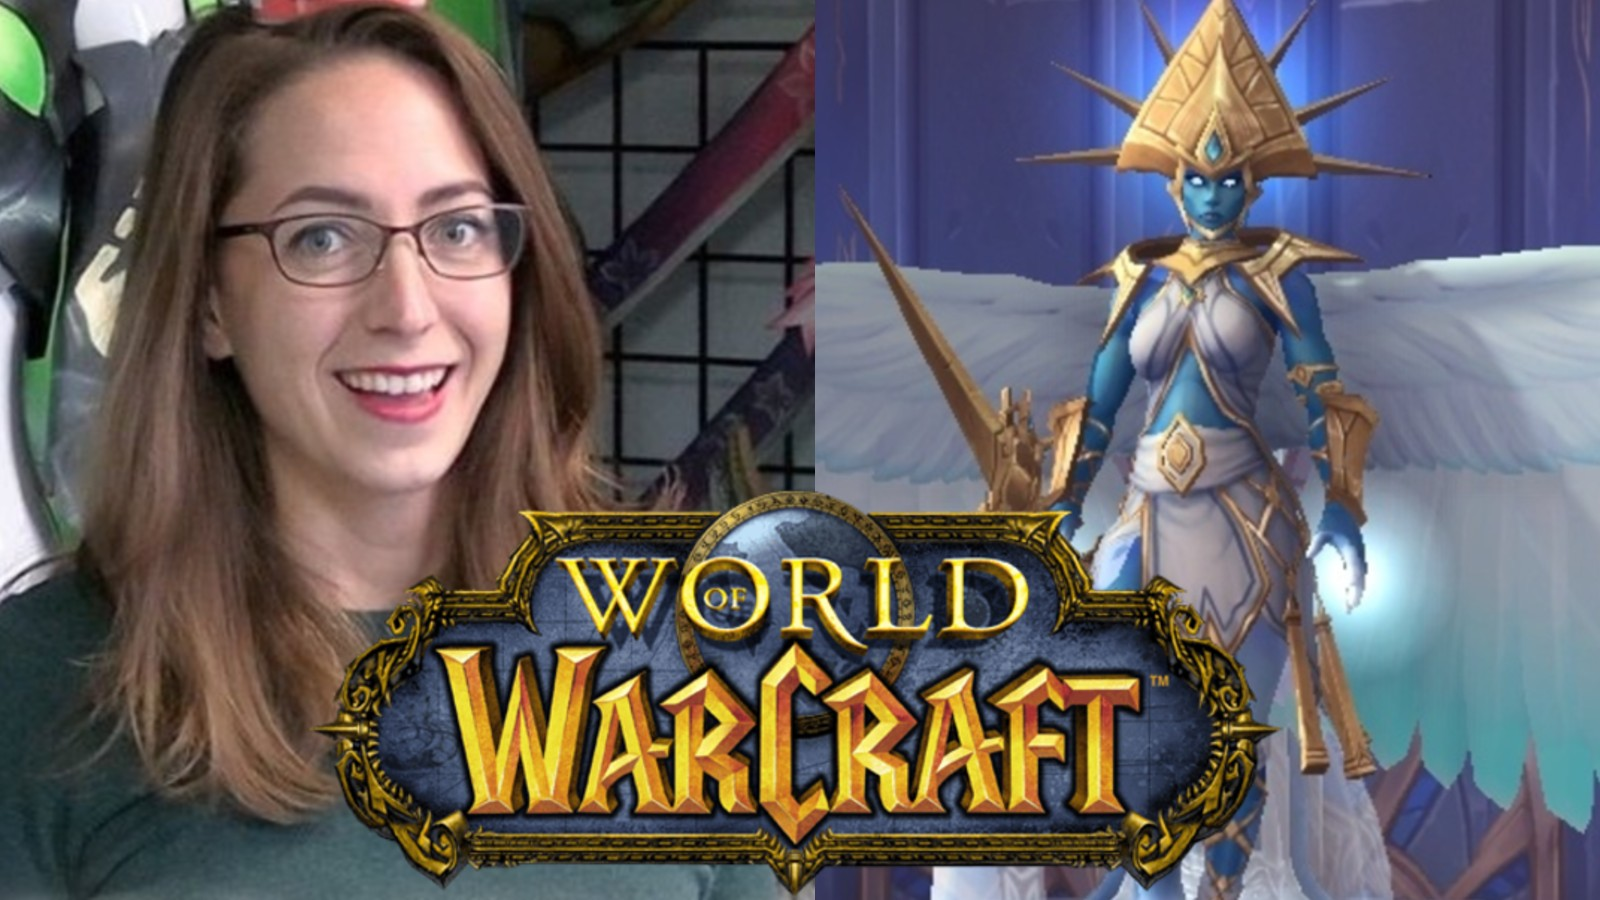 World of Warcraft WoW Kyrestia Cosplay Feature